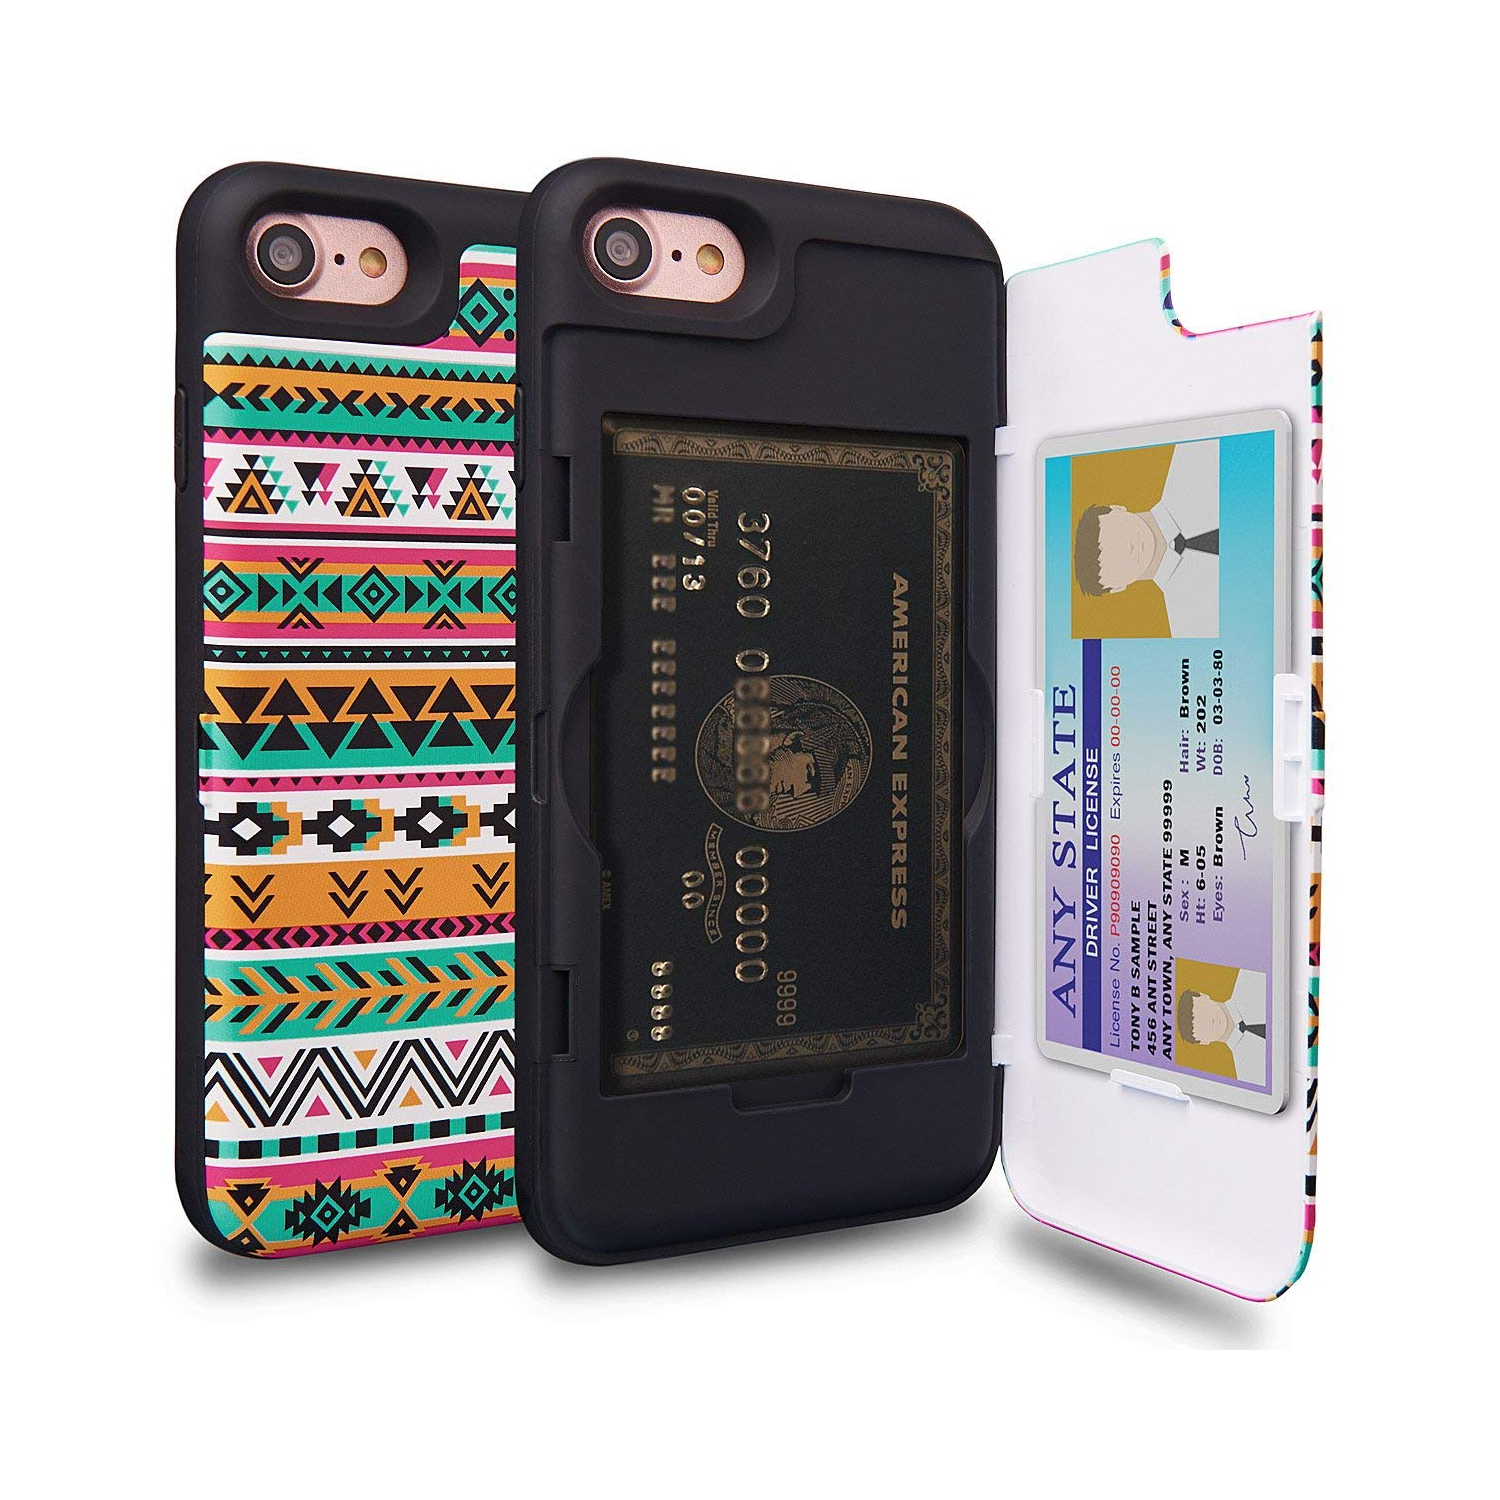 buy online fabd2 8072d iPhone 7 Case, TORU [iPhone 7 Wallet Case Pattern Colorful] Dual Layer  Hidden Credit Card Holder ID Slot Card Case with Mirror